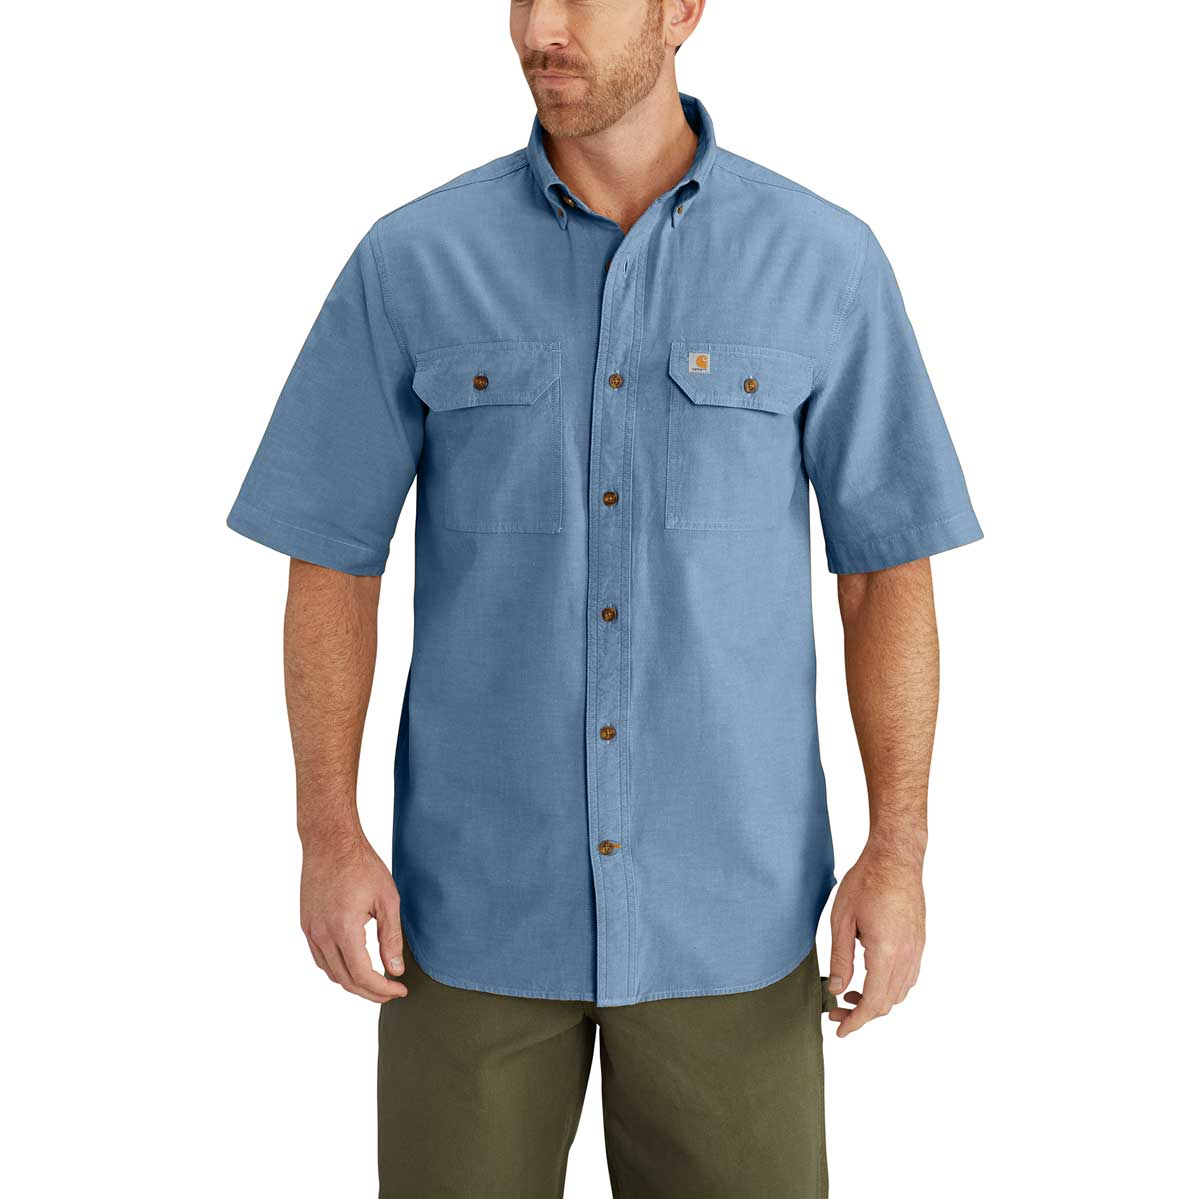 Carhartt Short-Sleeve Chambray Shirt